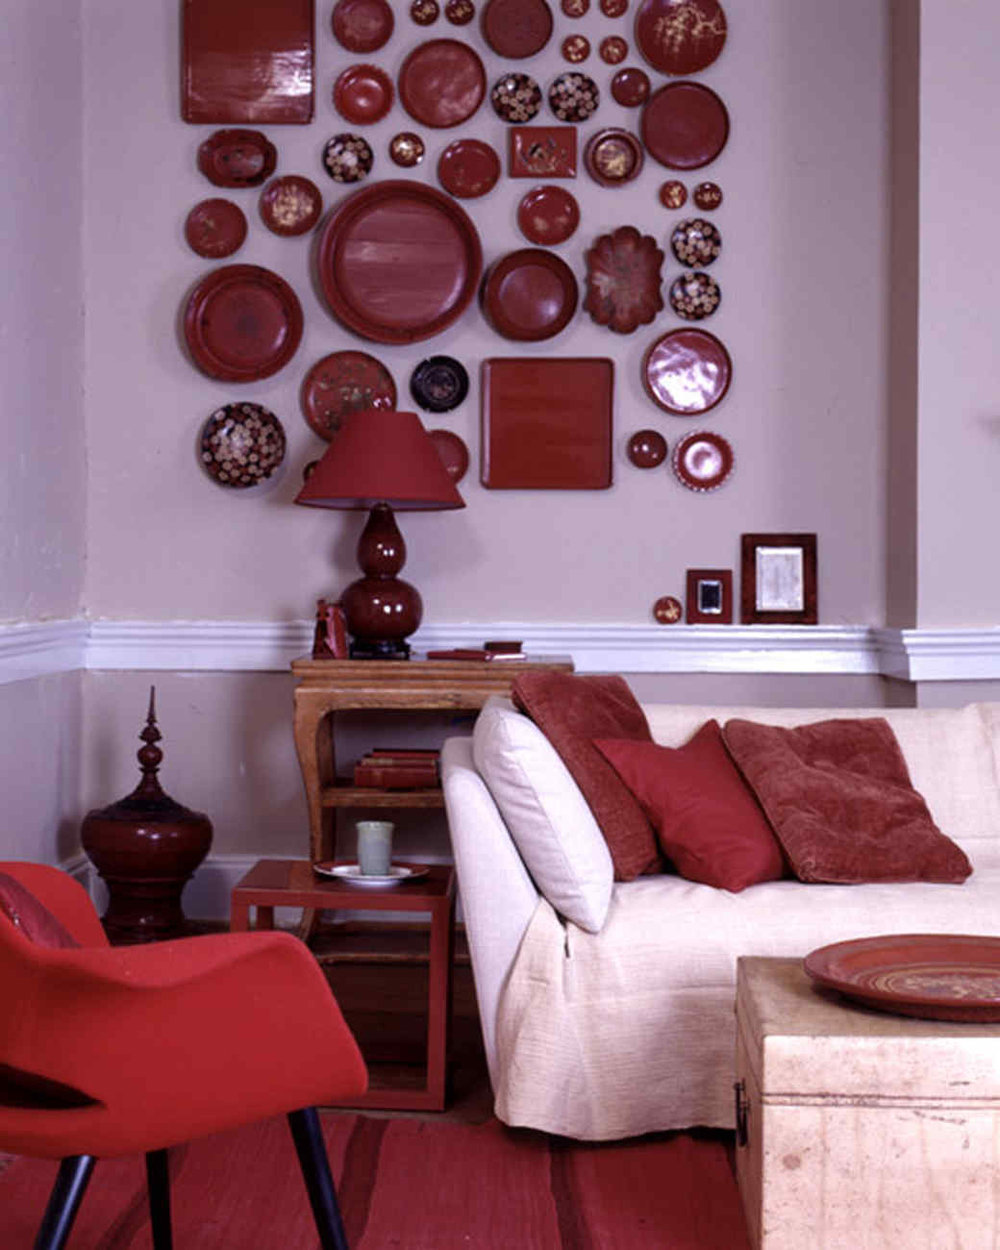 Red Lacquer Plates MS.jpg